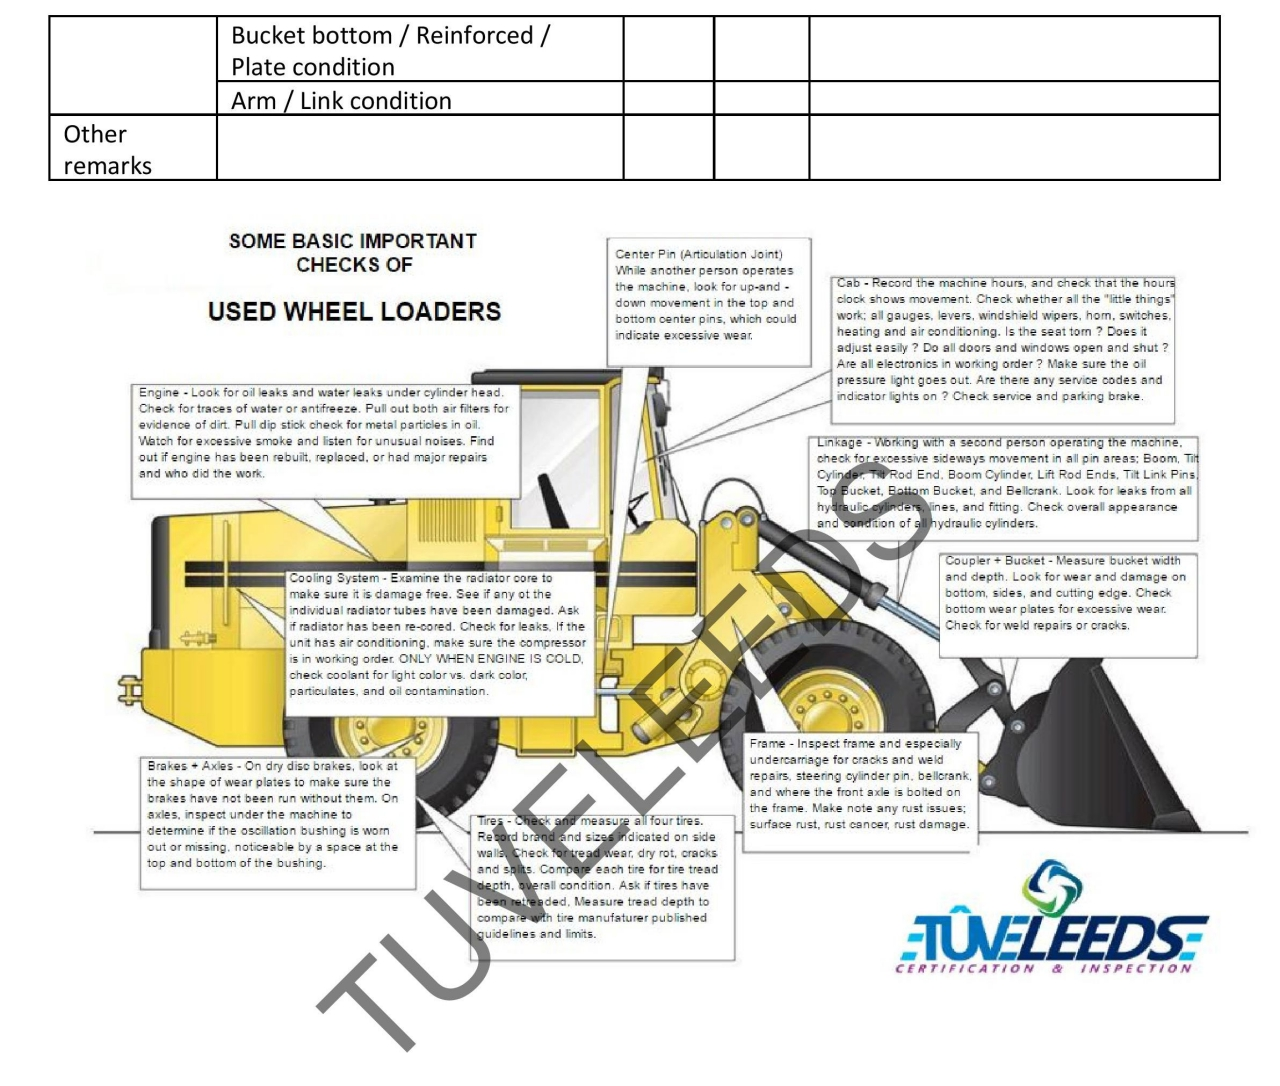 Wheel Loader Inspection Checklist – TOVE LEEDS